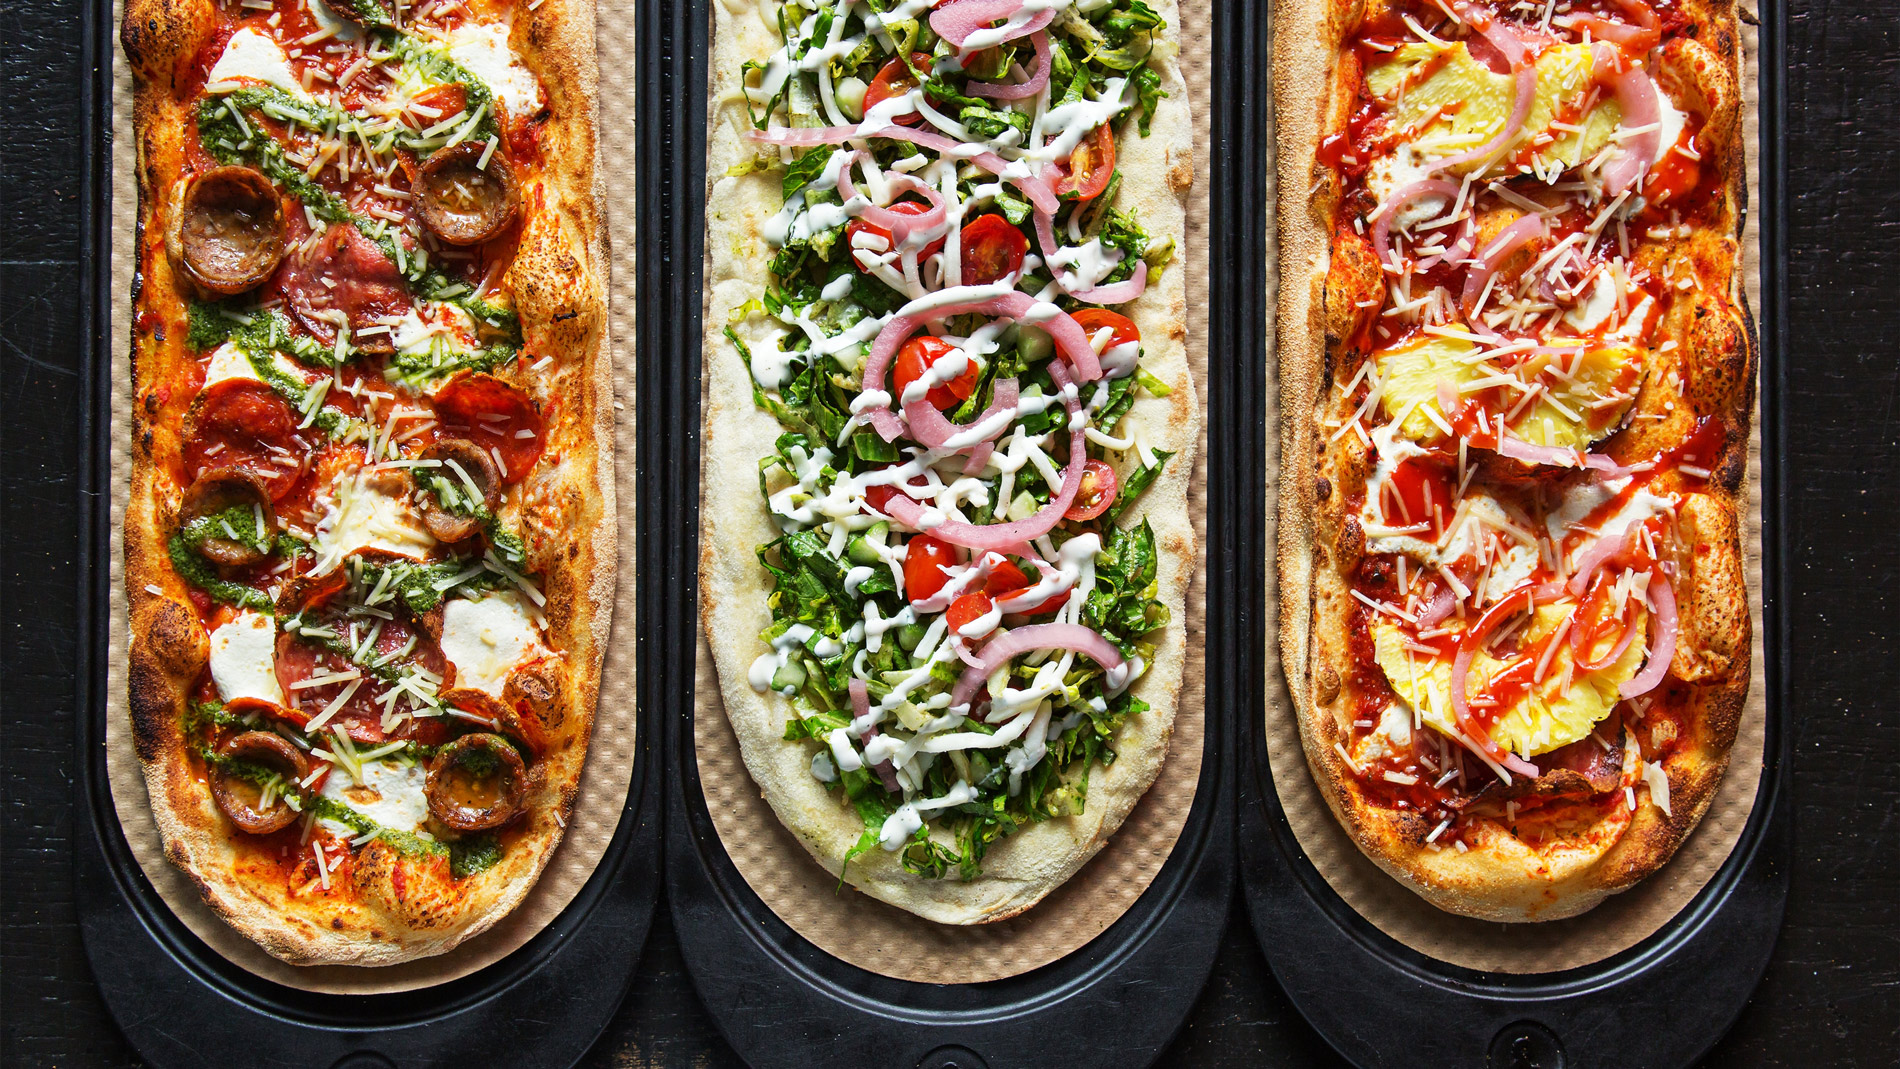 &pizza expands to New York City